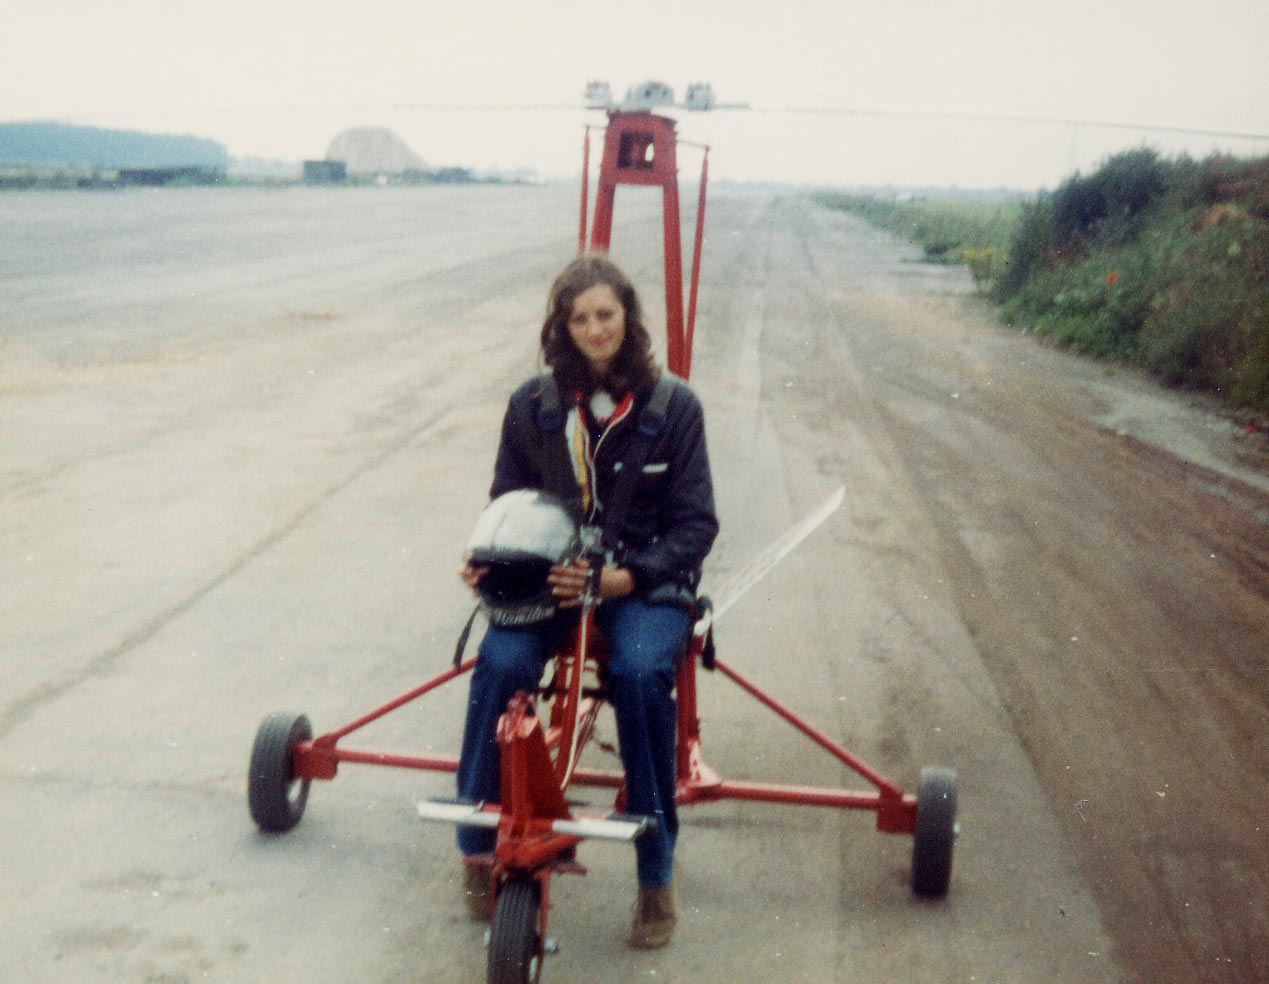 Carol on the Gyro Glider